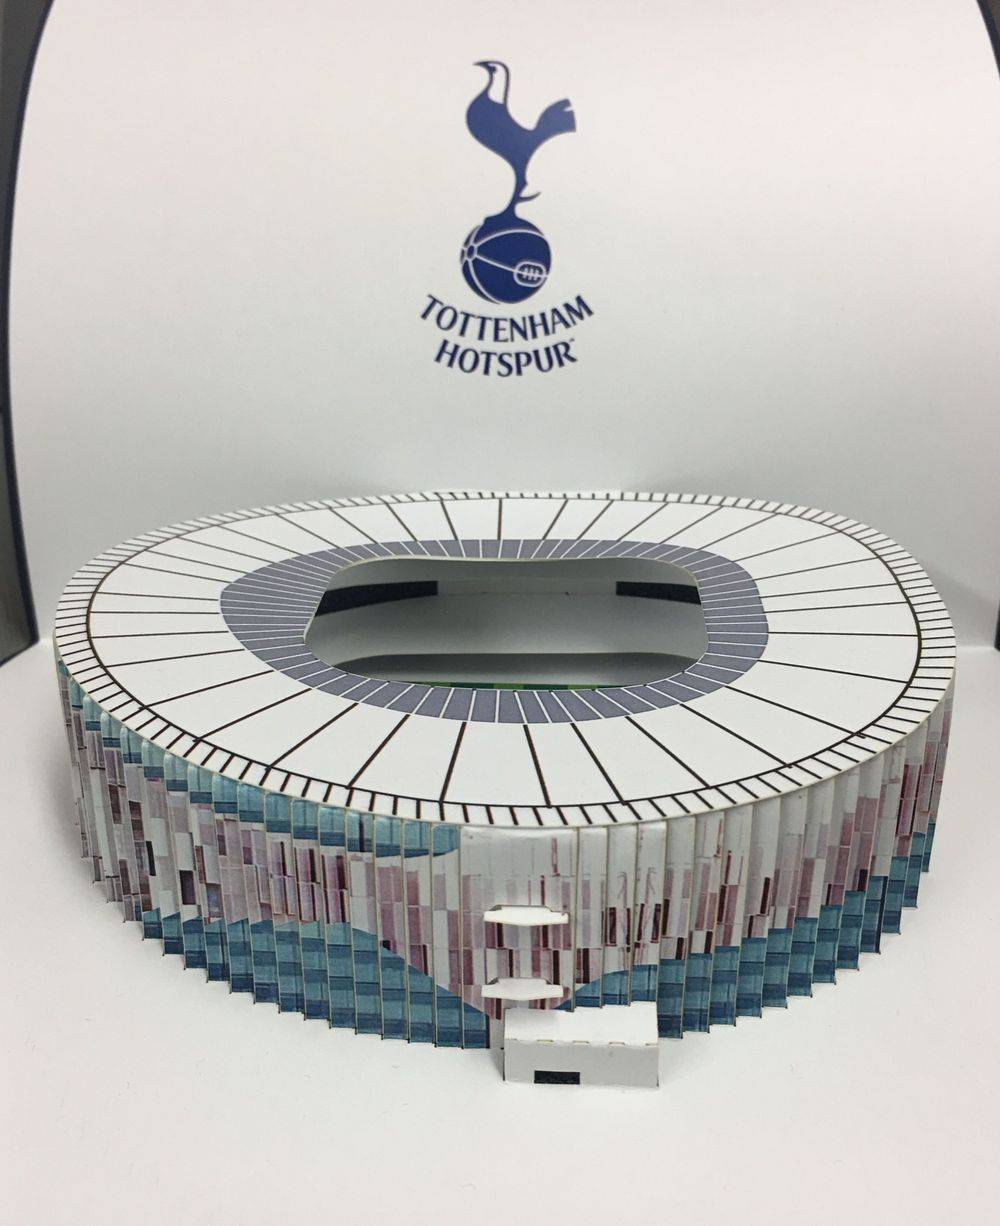 Tottenham Hotspur Football Stadium